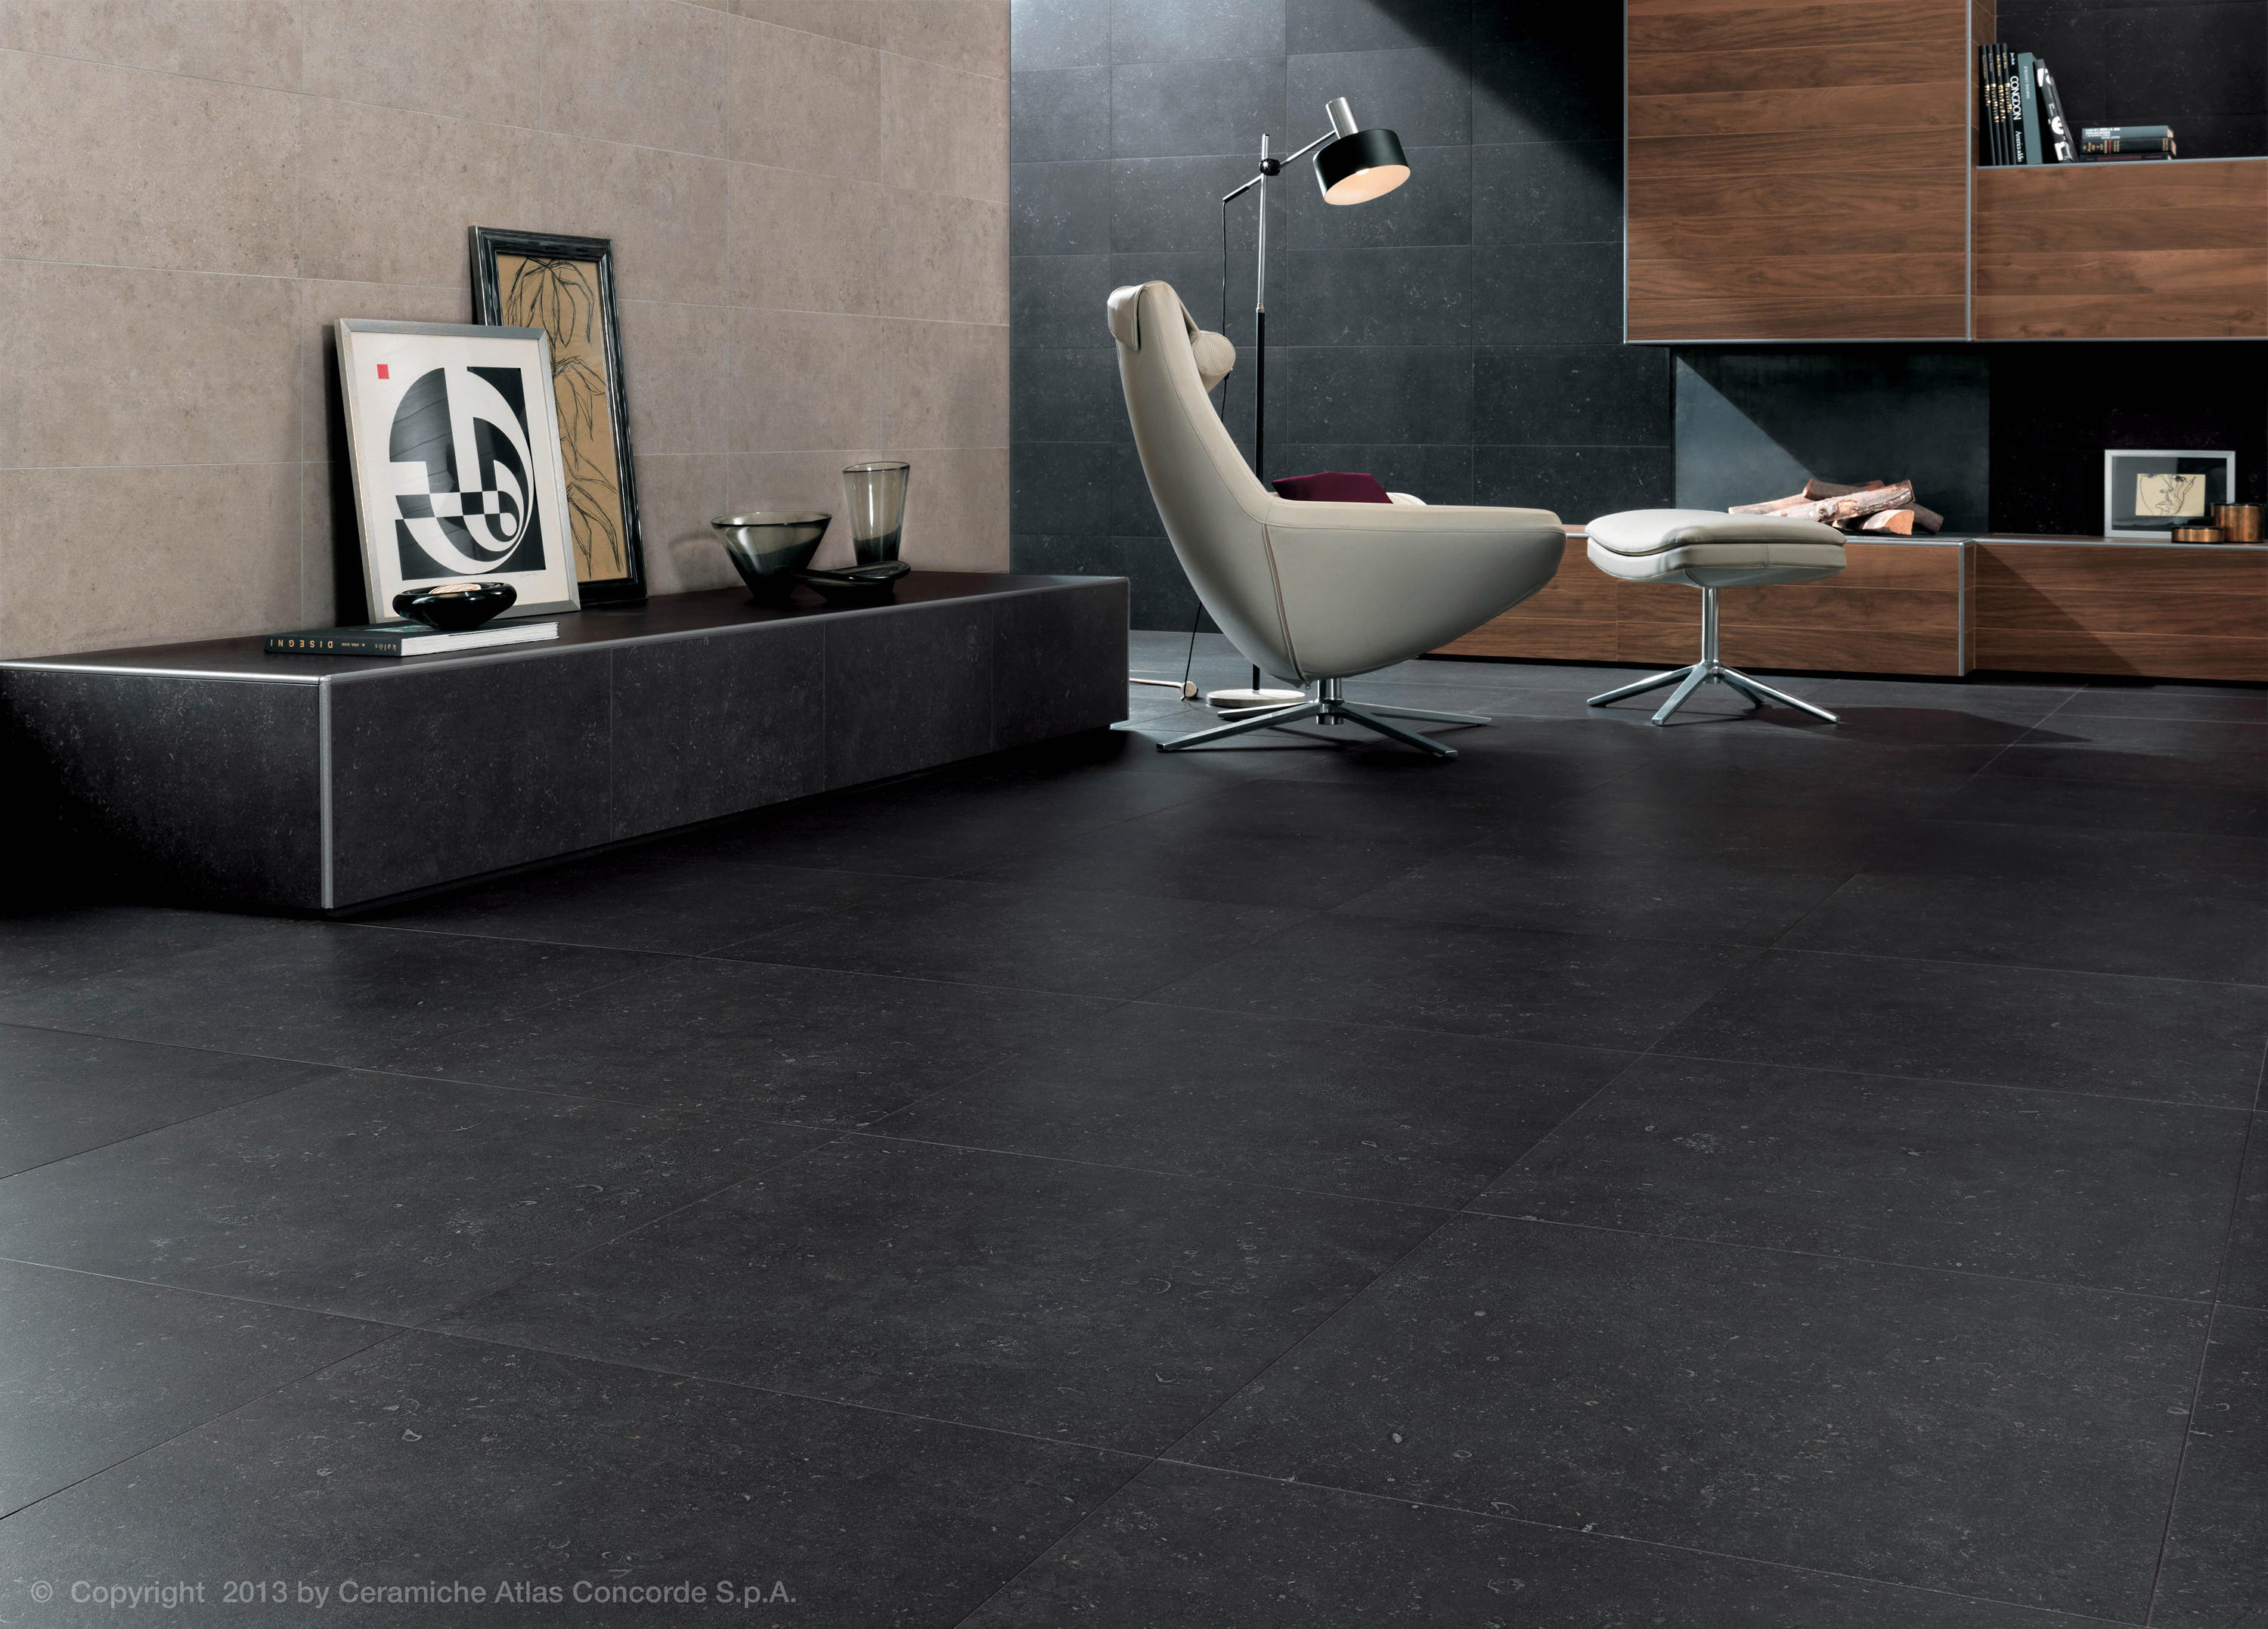 Seastone Ceramic Tiles From Atlas Concorde Architonic